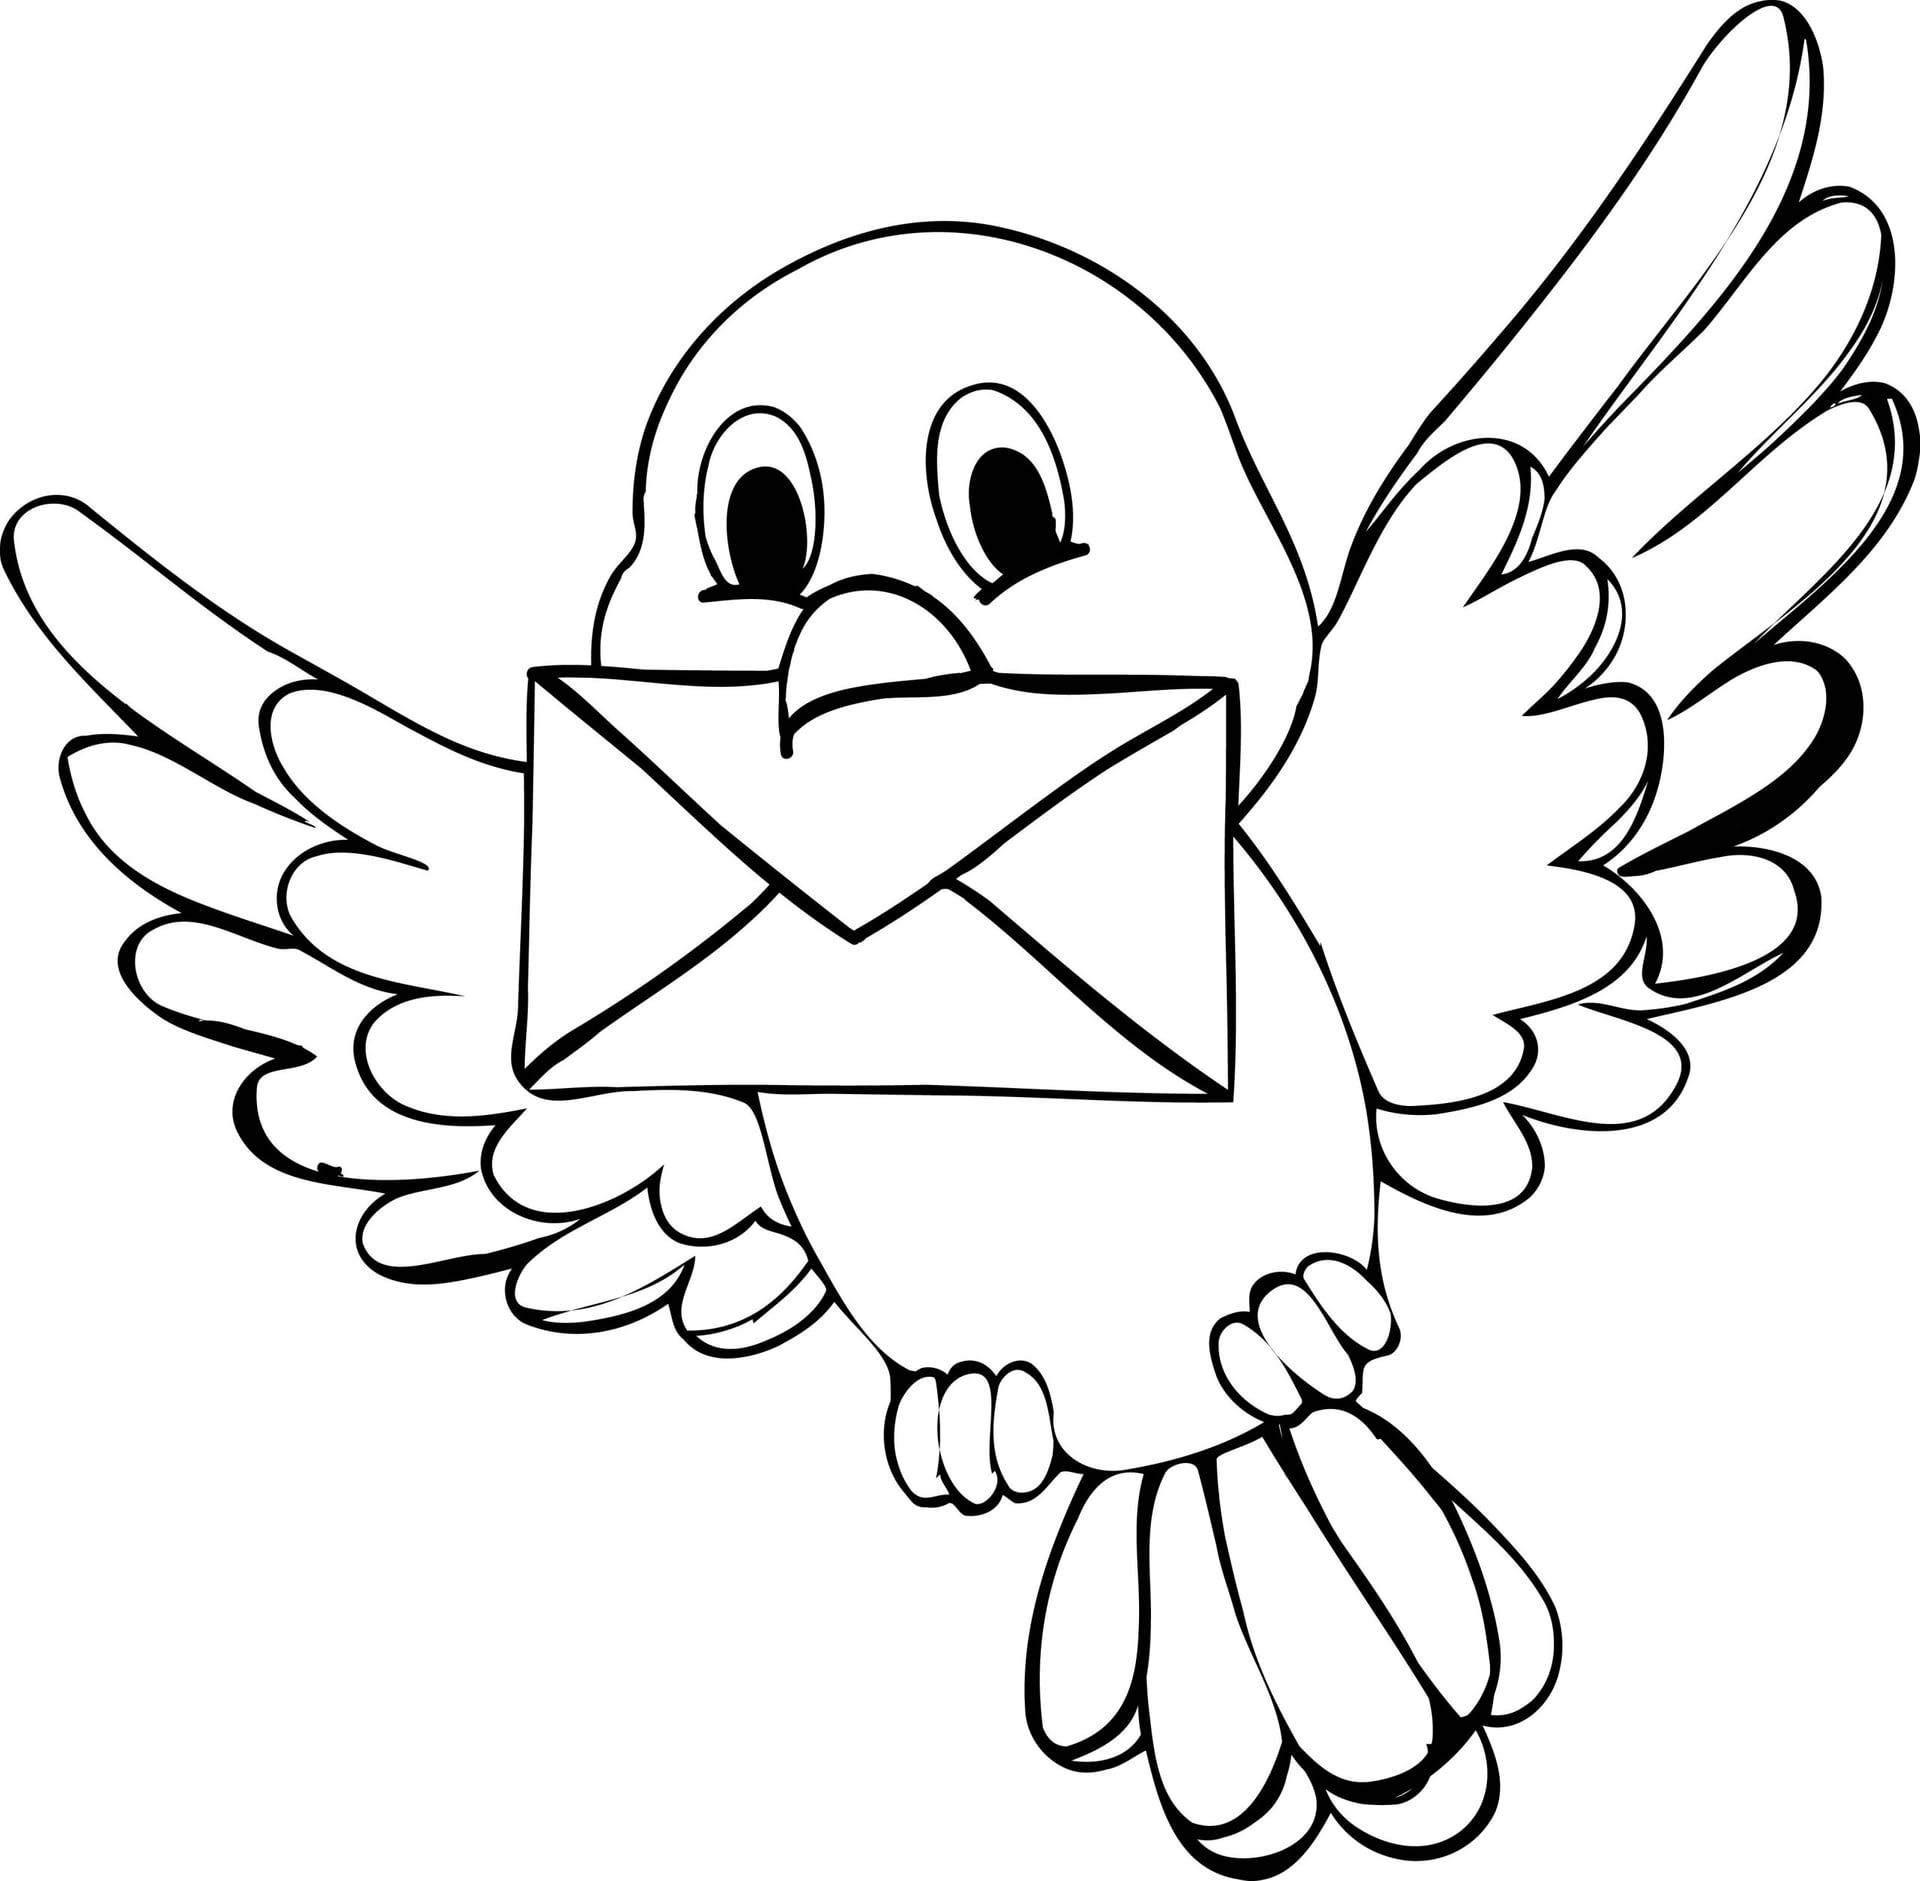 birds coloring pages bird coloring pages coloring pages birds